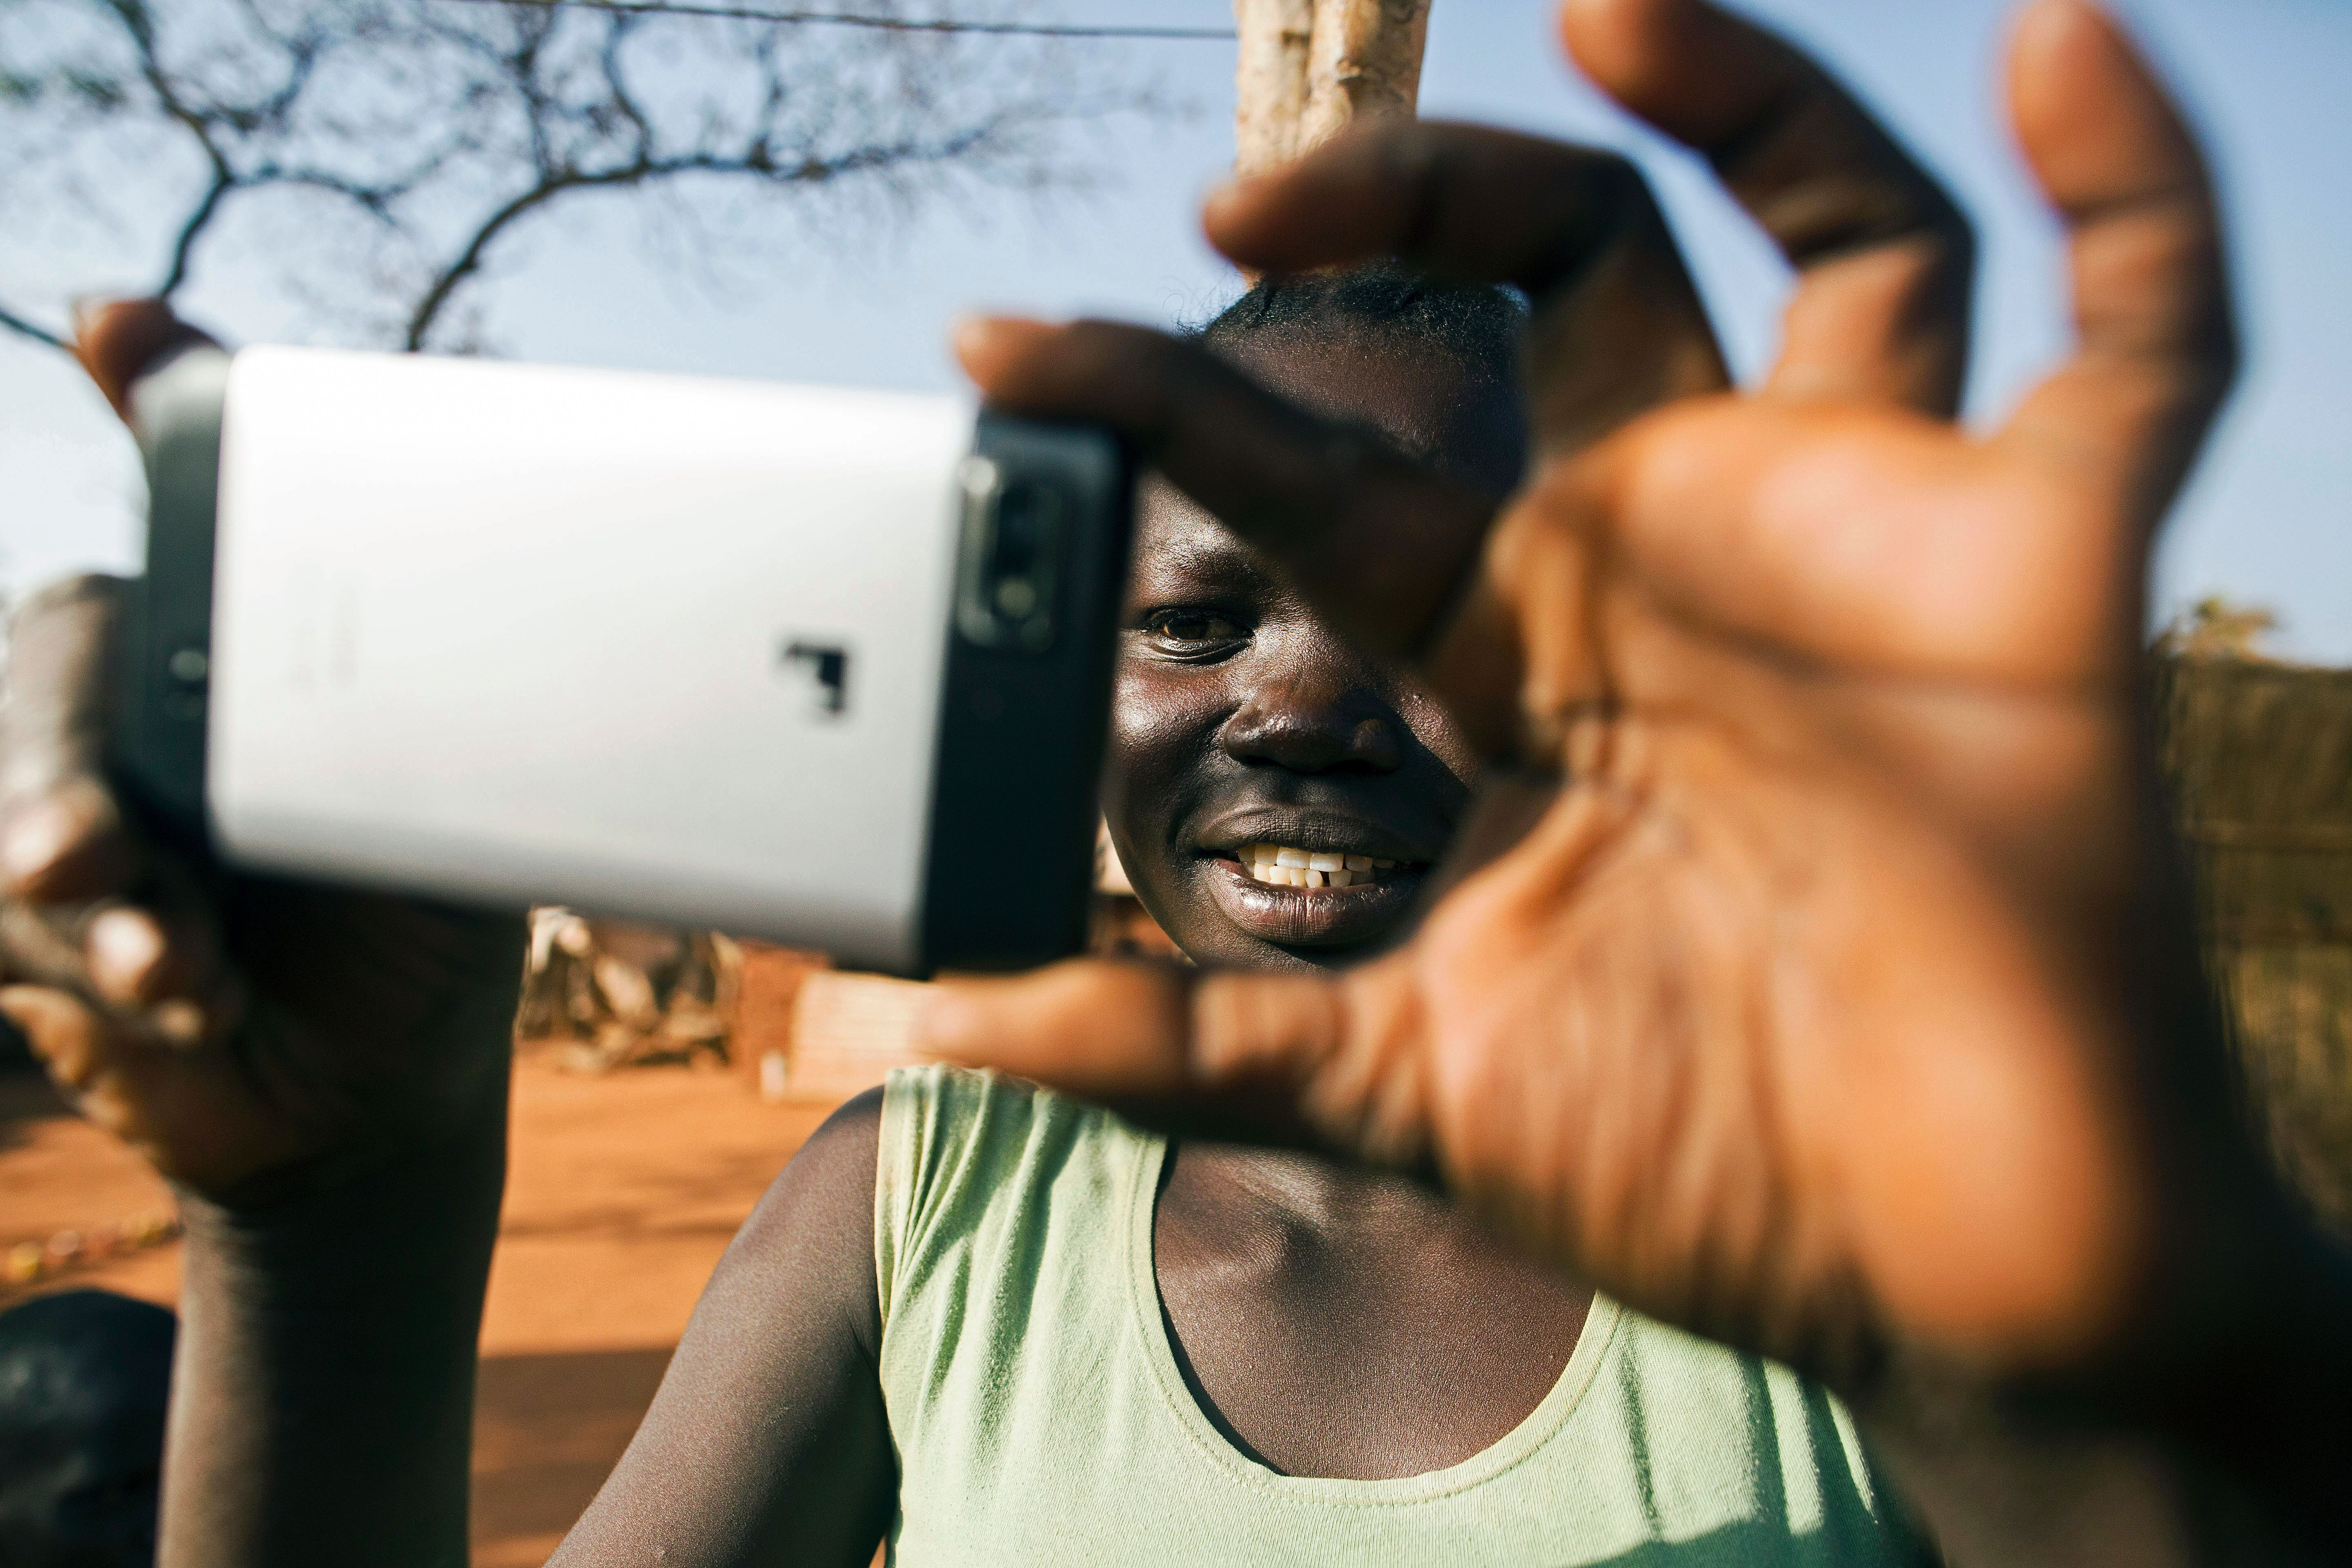 Refugee Manar Abdelaziz Mudir, 19, from South Kordofan takes pictures of her brothers, all living with her in the refugee camp of Ajuong Thok in South Sudan, on Jan. 27, 2016.